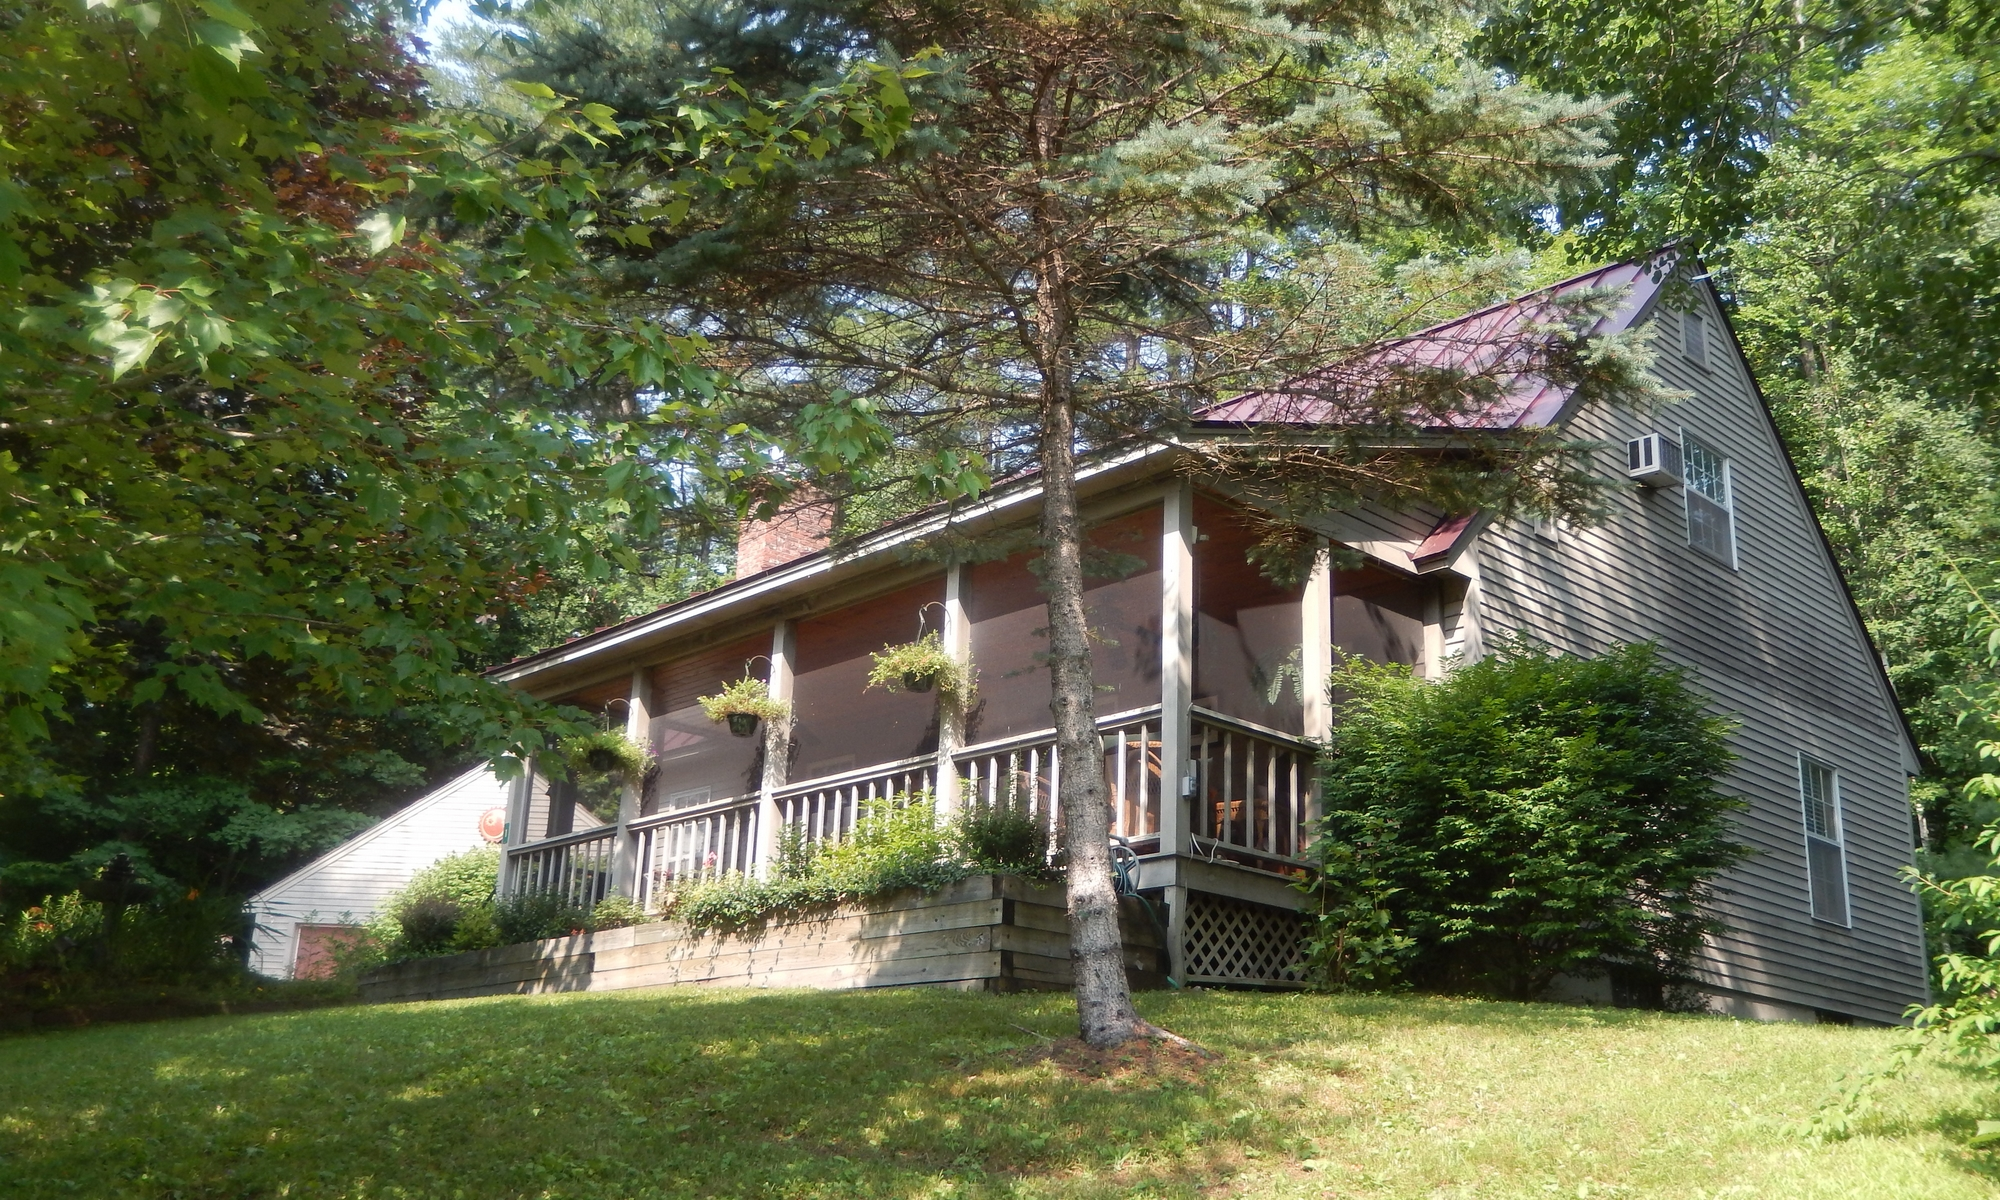 Single Family Home for Sale at Charming Ludlow Village Cape 1 Whispering Pines Ludlow, Vermont, 05149 United States